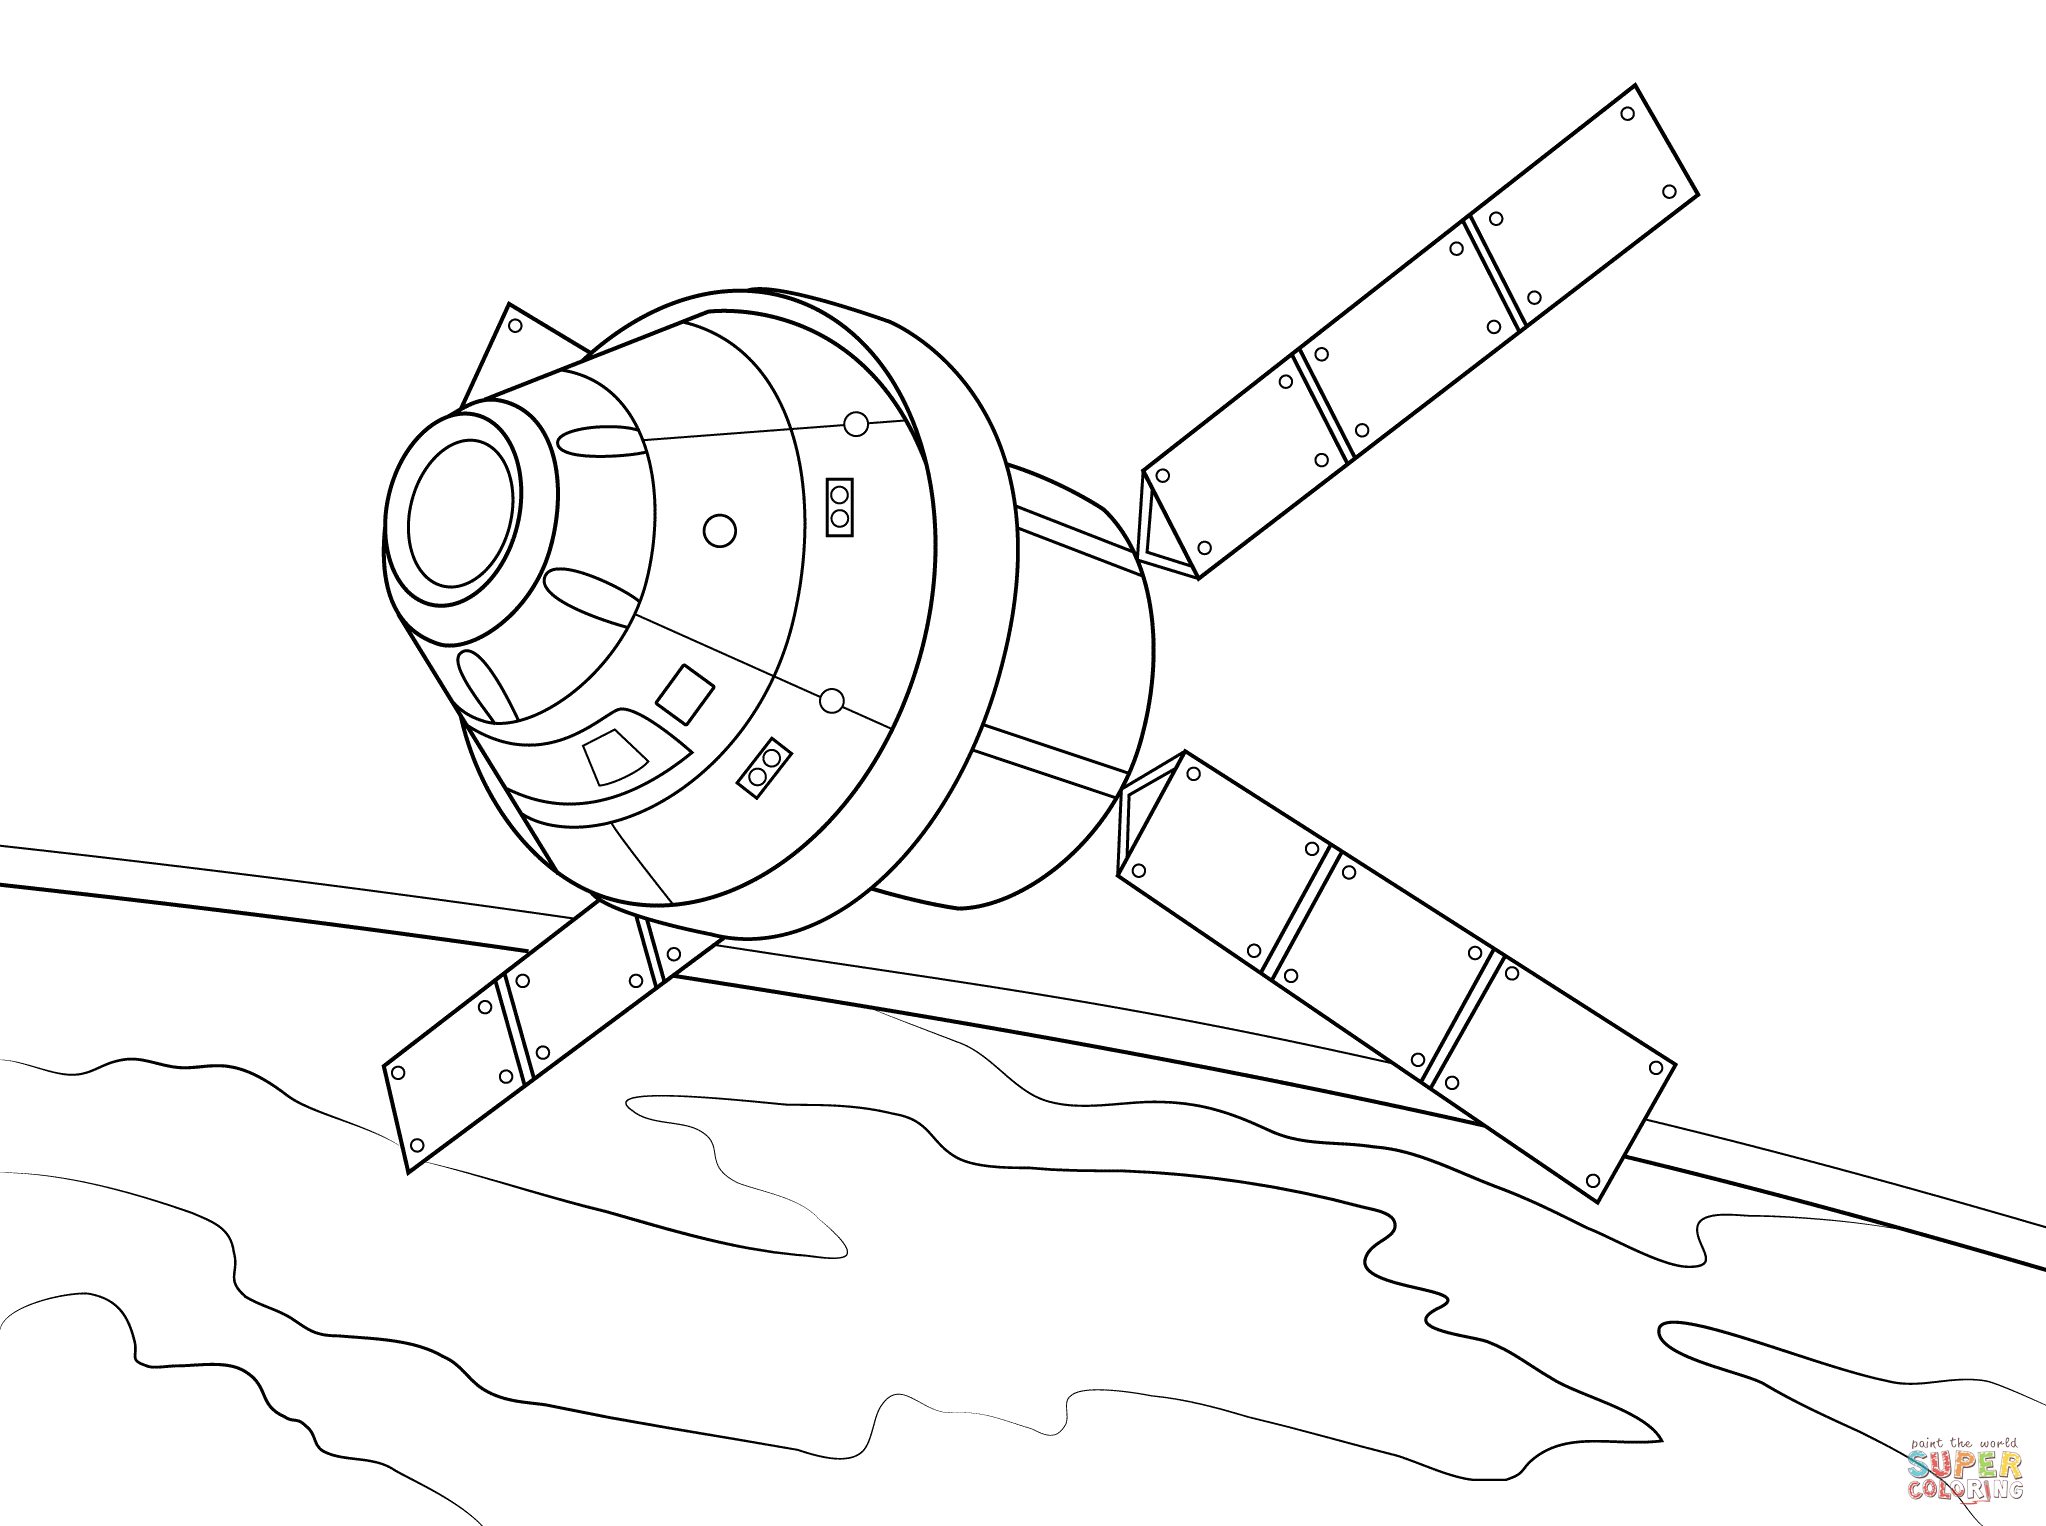 alien ship drawing at getdrawings com free for personal use alien